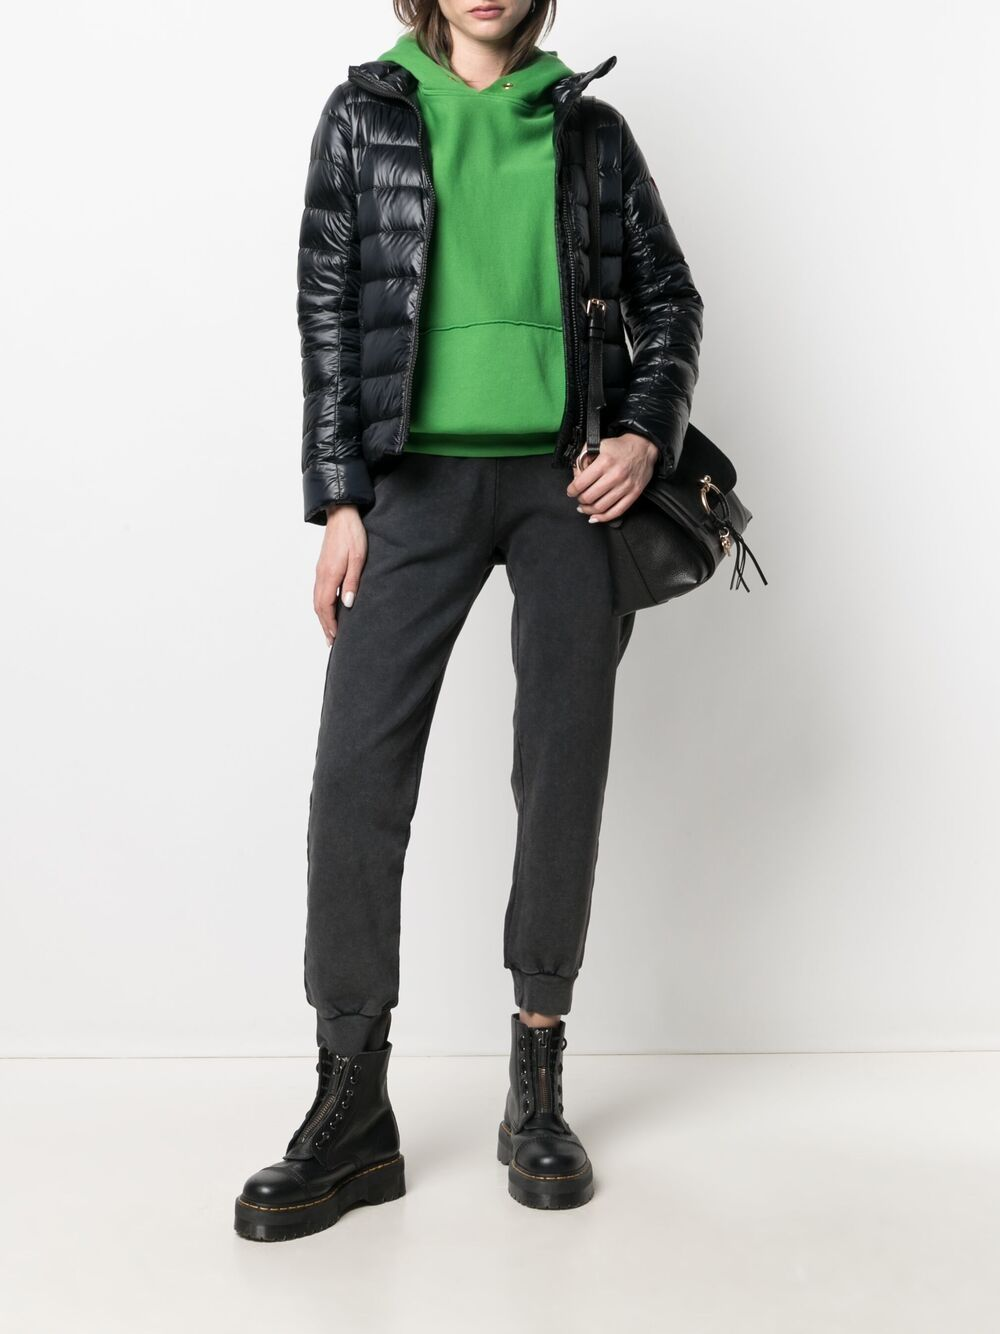 Farfetch: Up To 50% Off + Extra 15% off Designer Sale